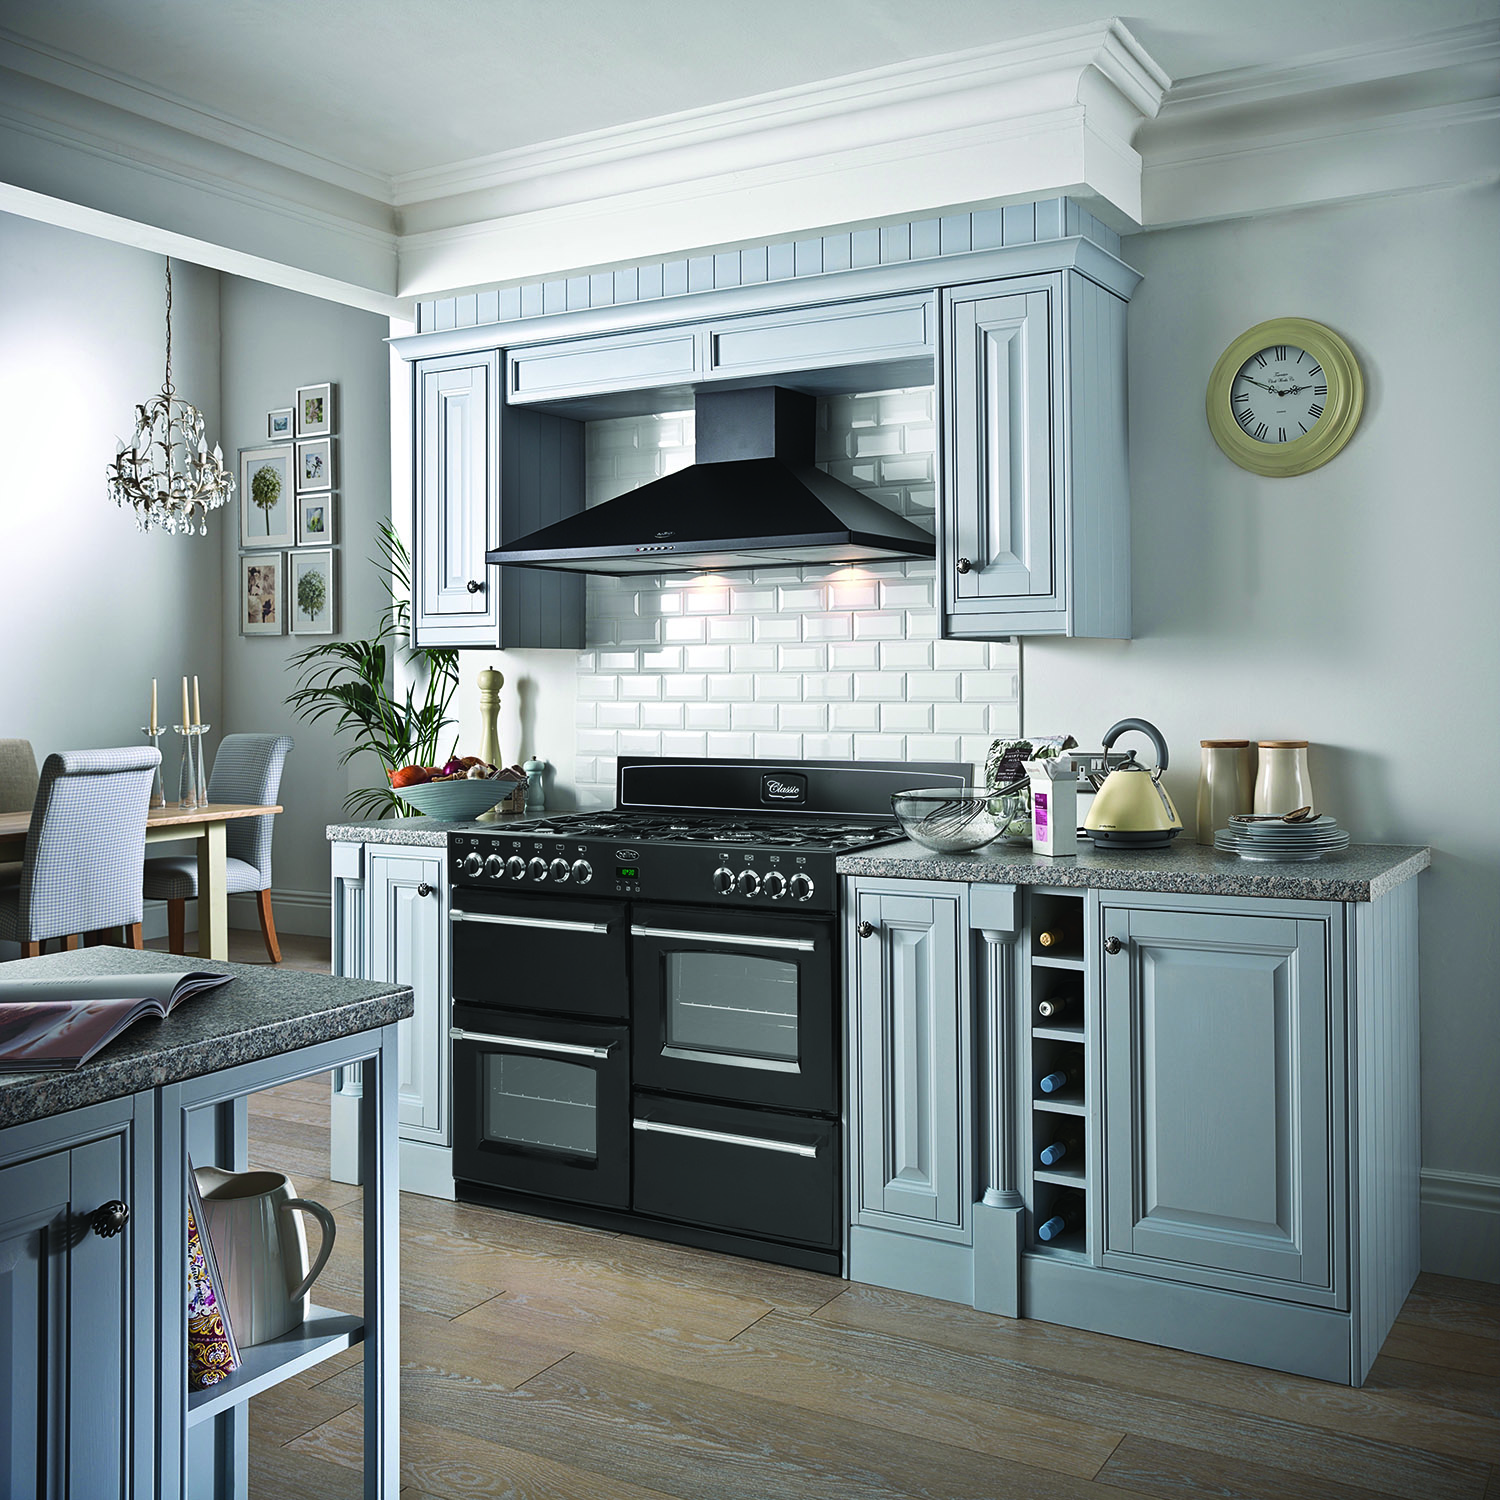 Get to know Belling and Stoves